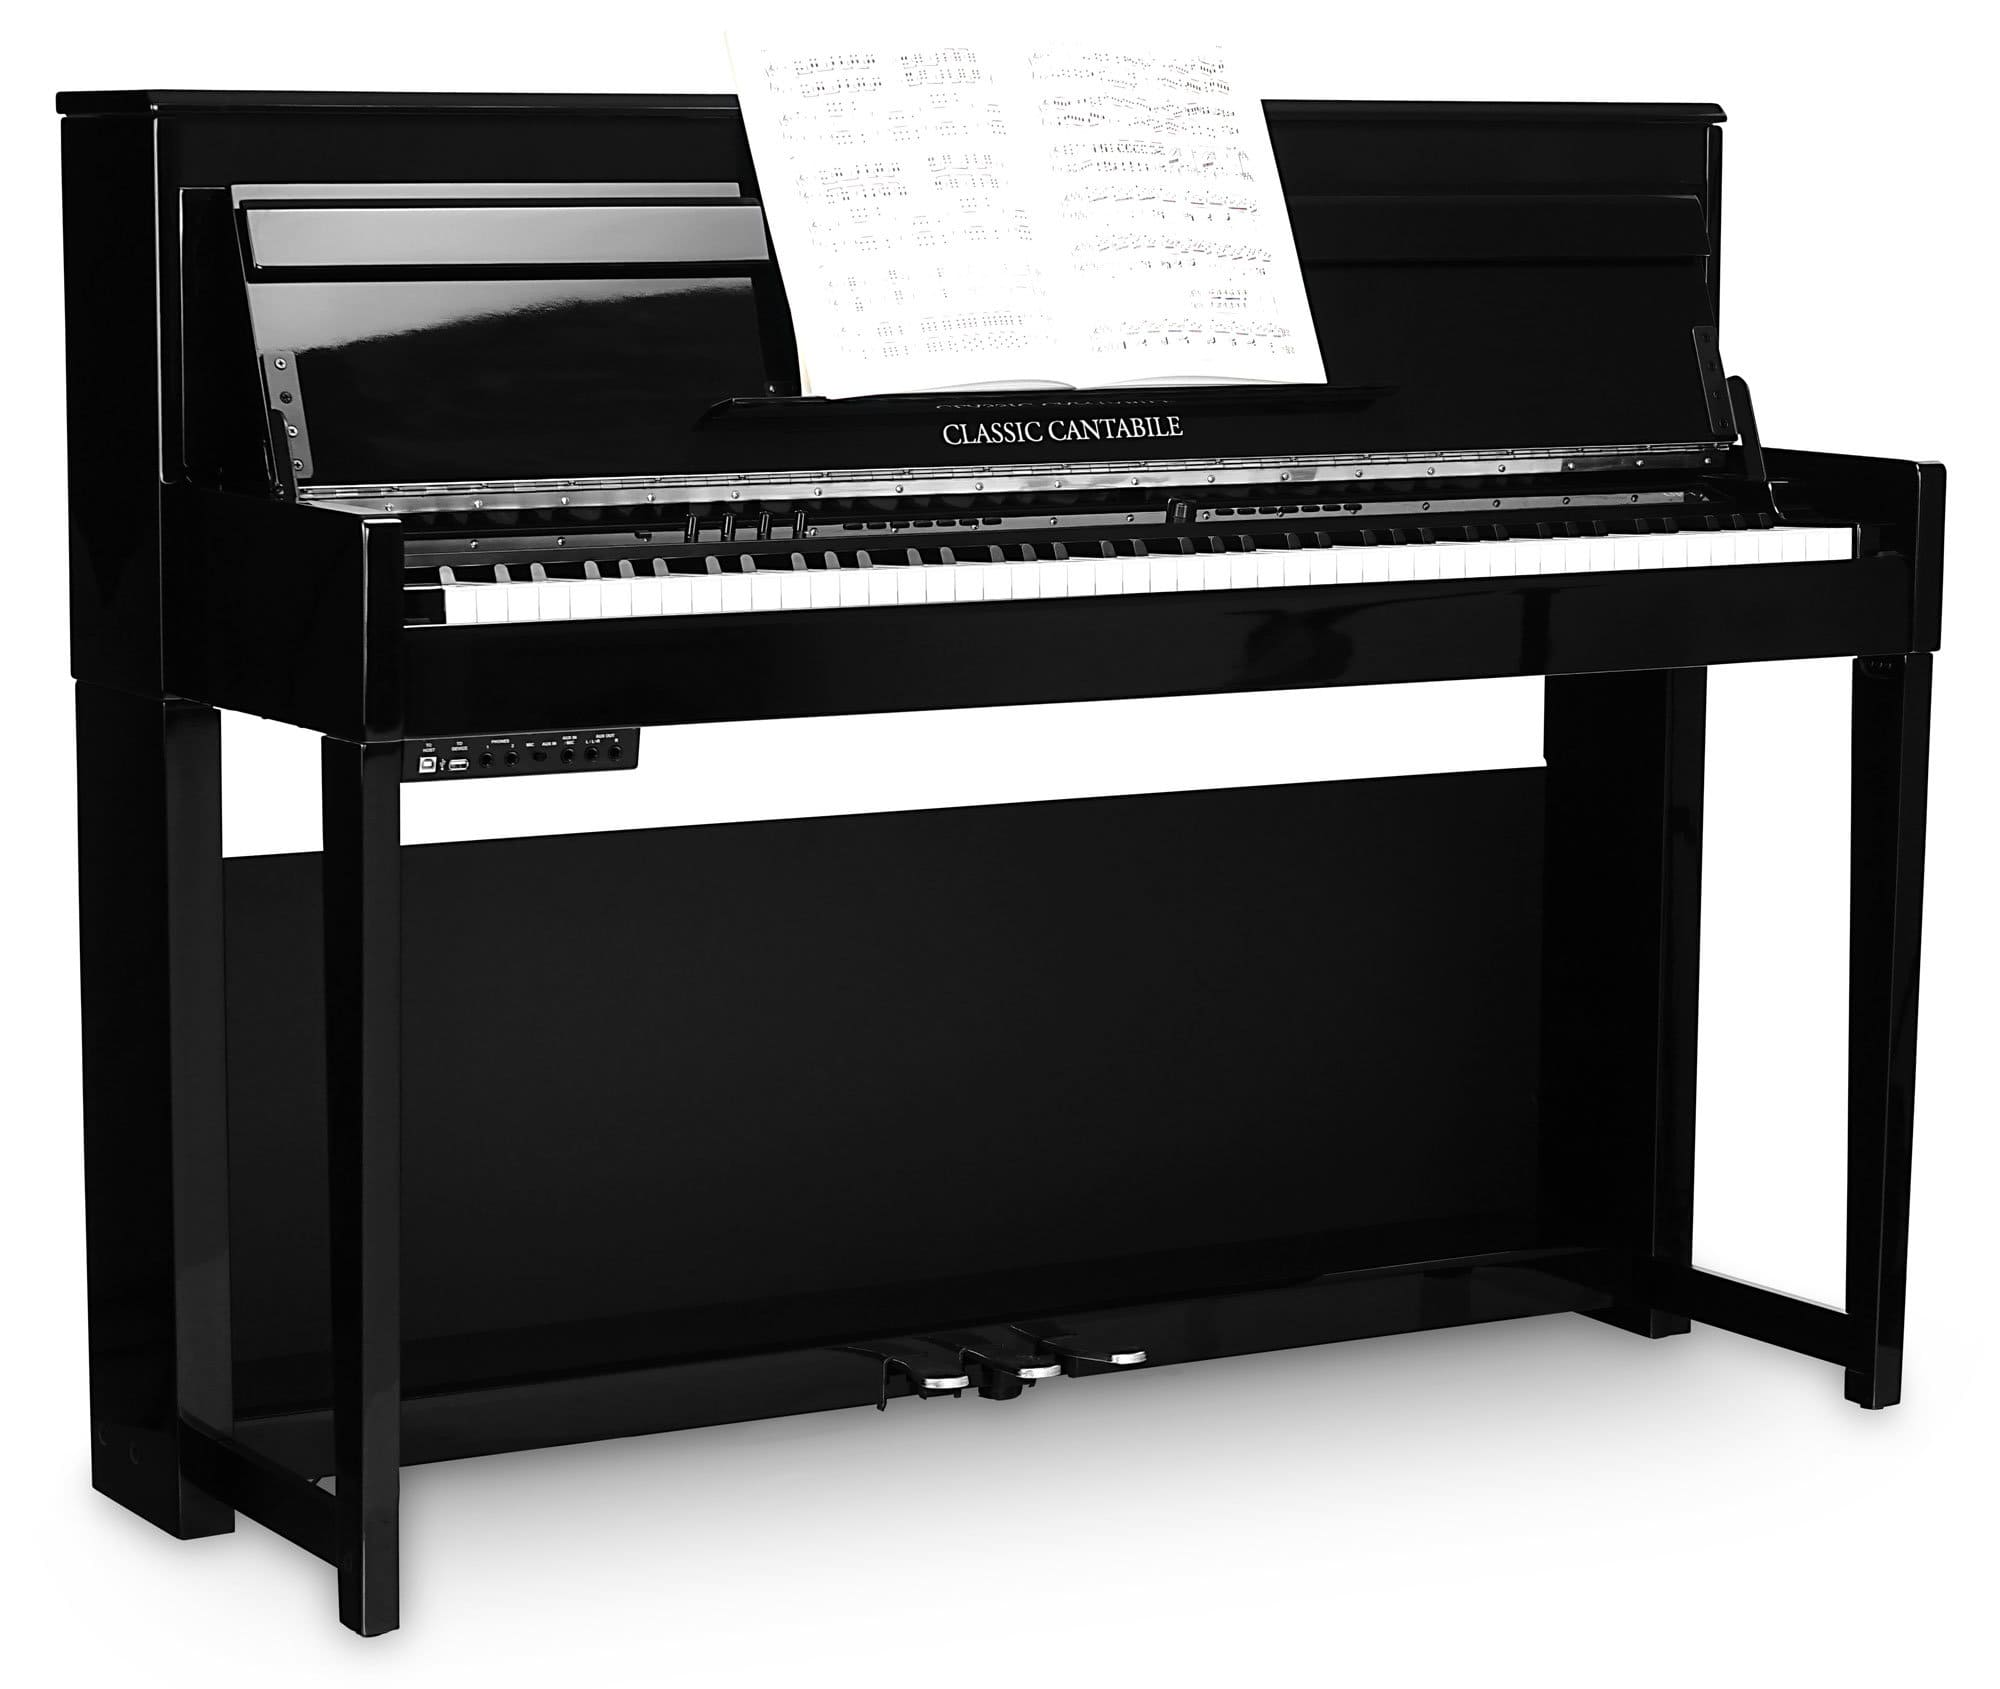 Classic cantabile up 1 sh upright e piano black high gloss for Classic house piano